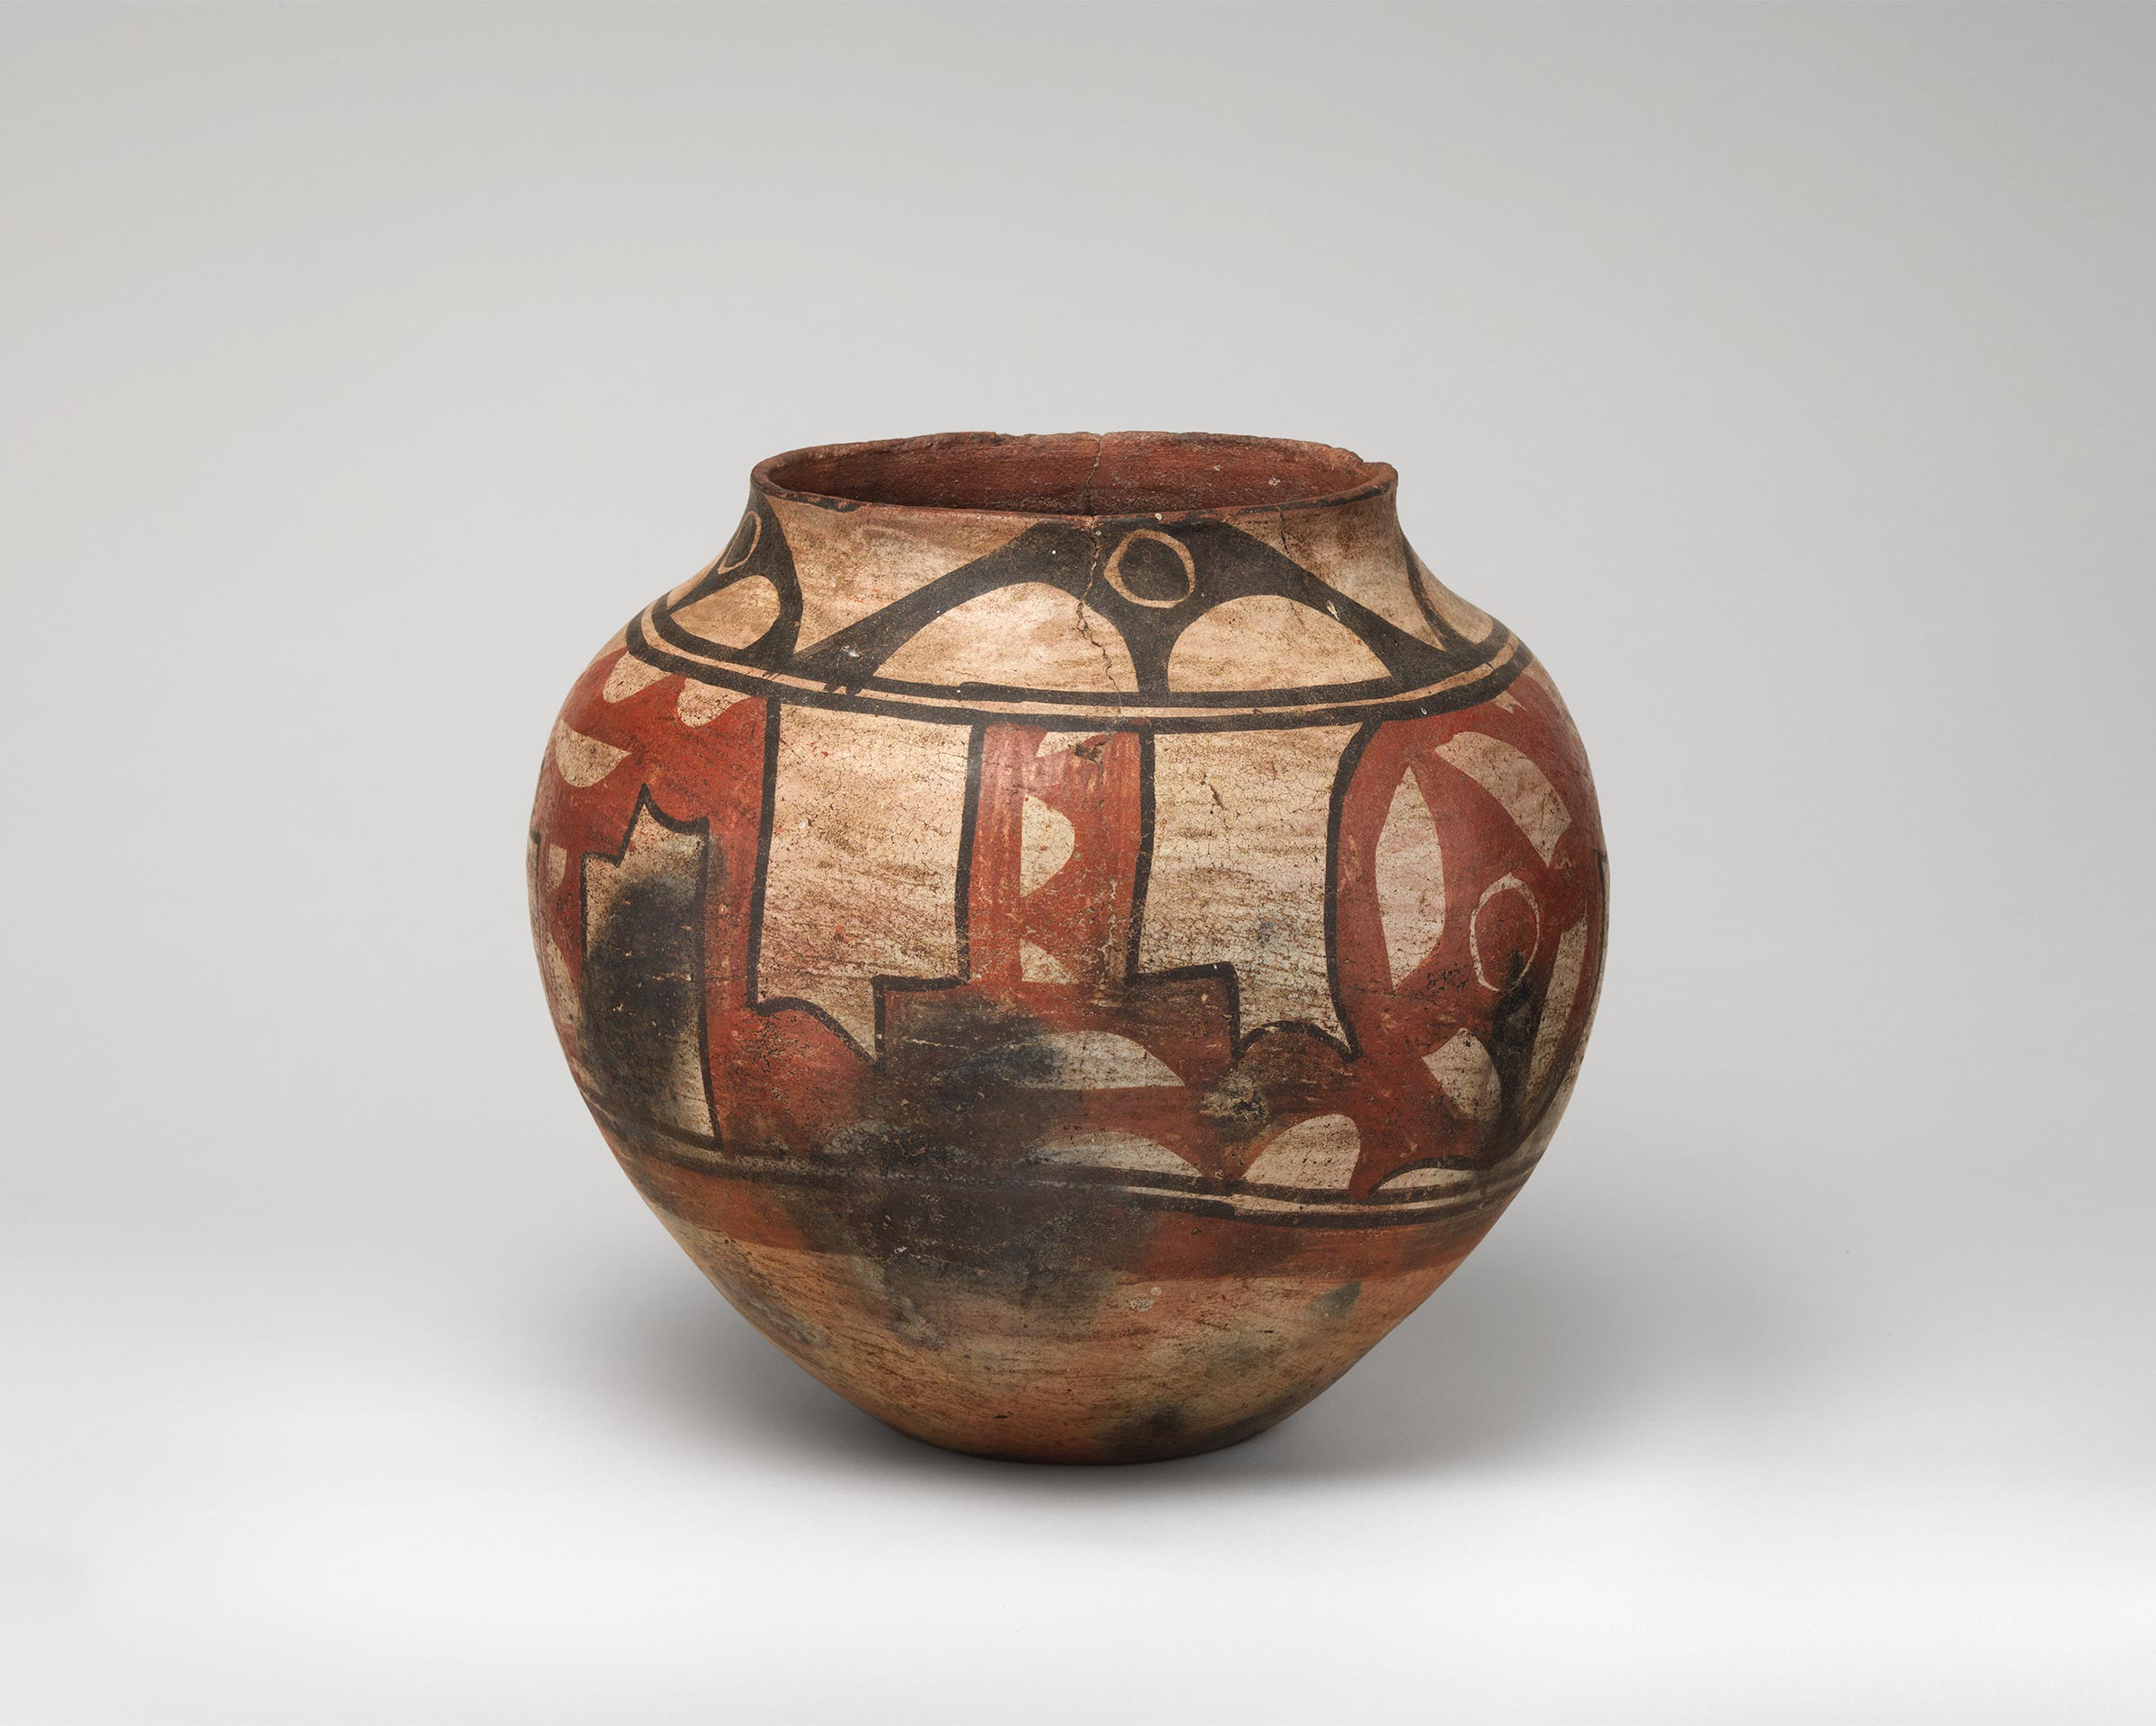 Santa Ana polychrome water jar featuring white slip with black and red painted decoration.